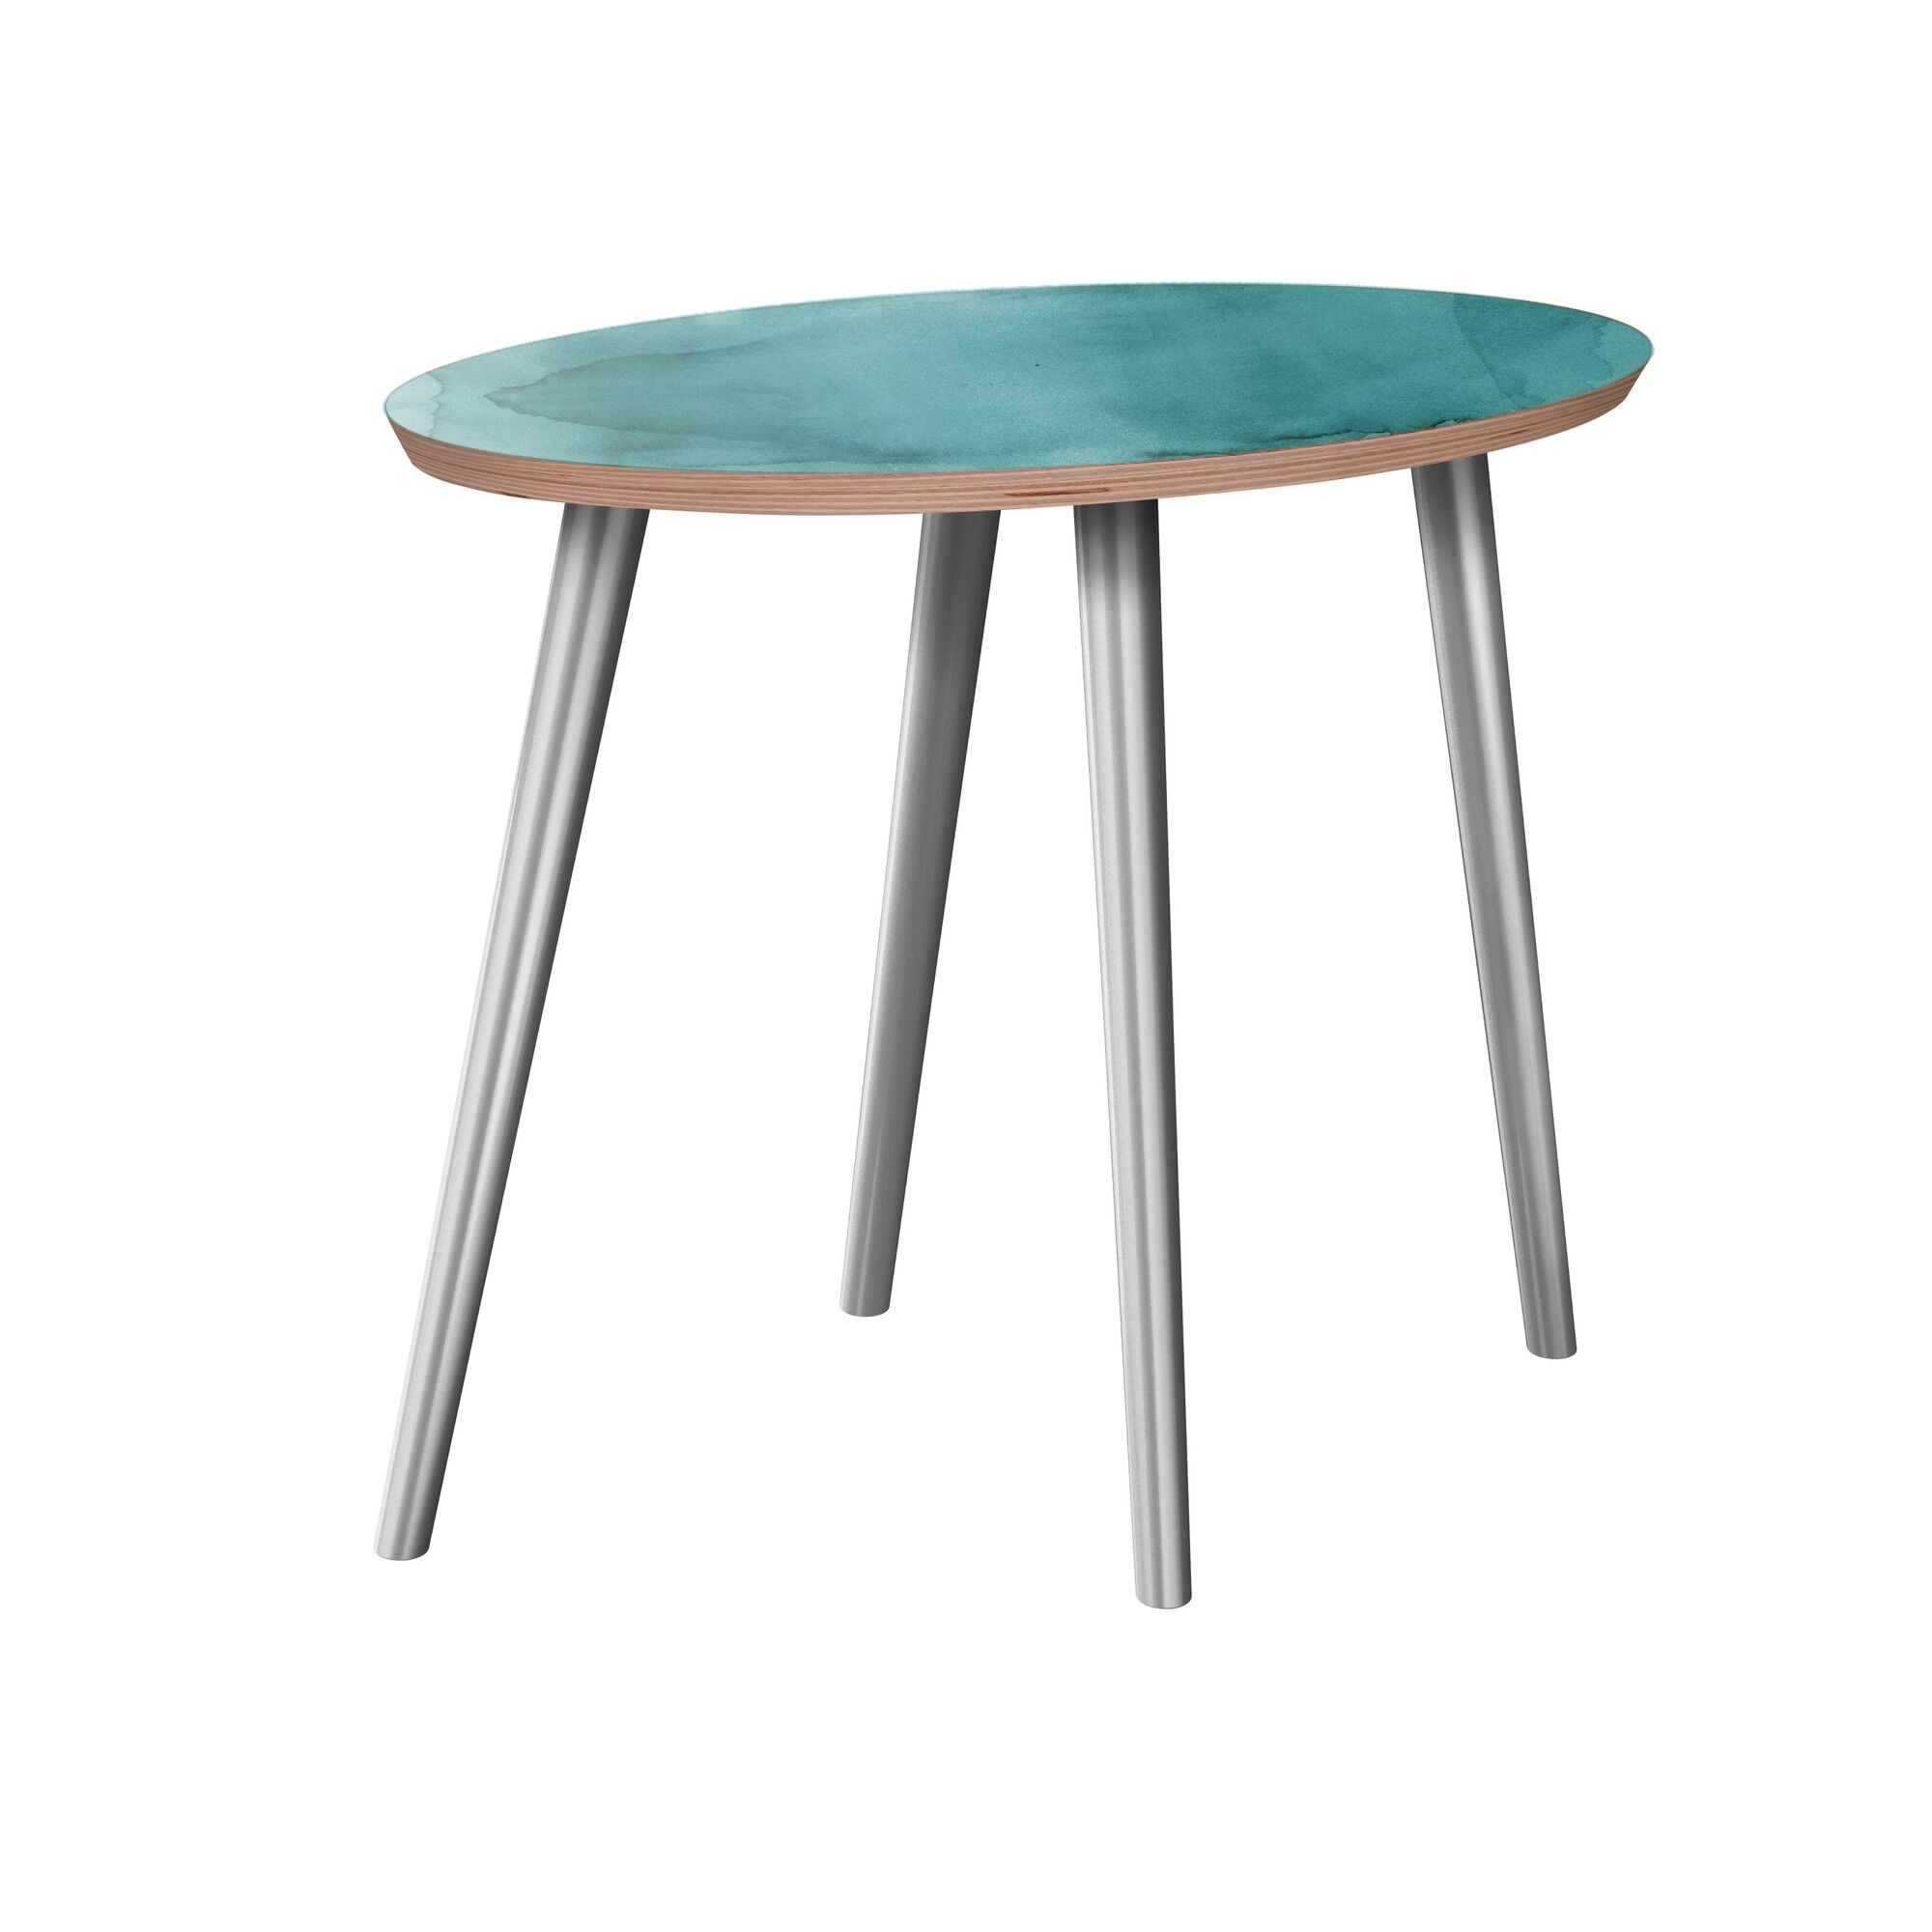 Jarret End Table Table Base Color: Chrome, Table Top Boarder Color: Walnut, Table Top Color: Gray/Black